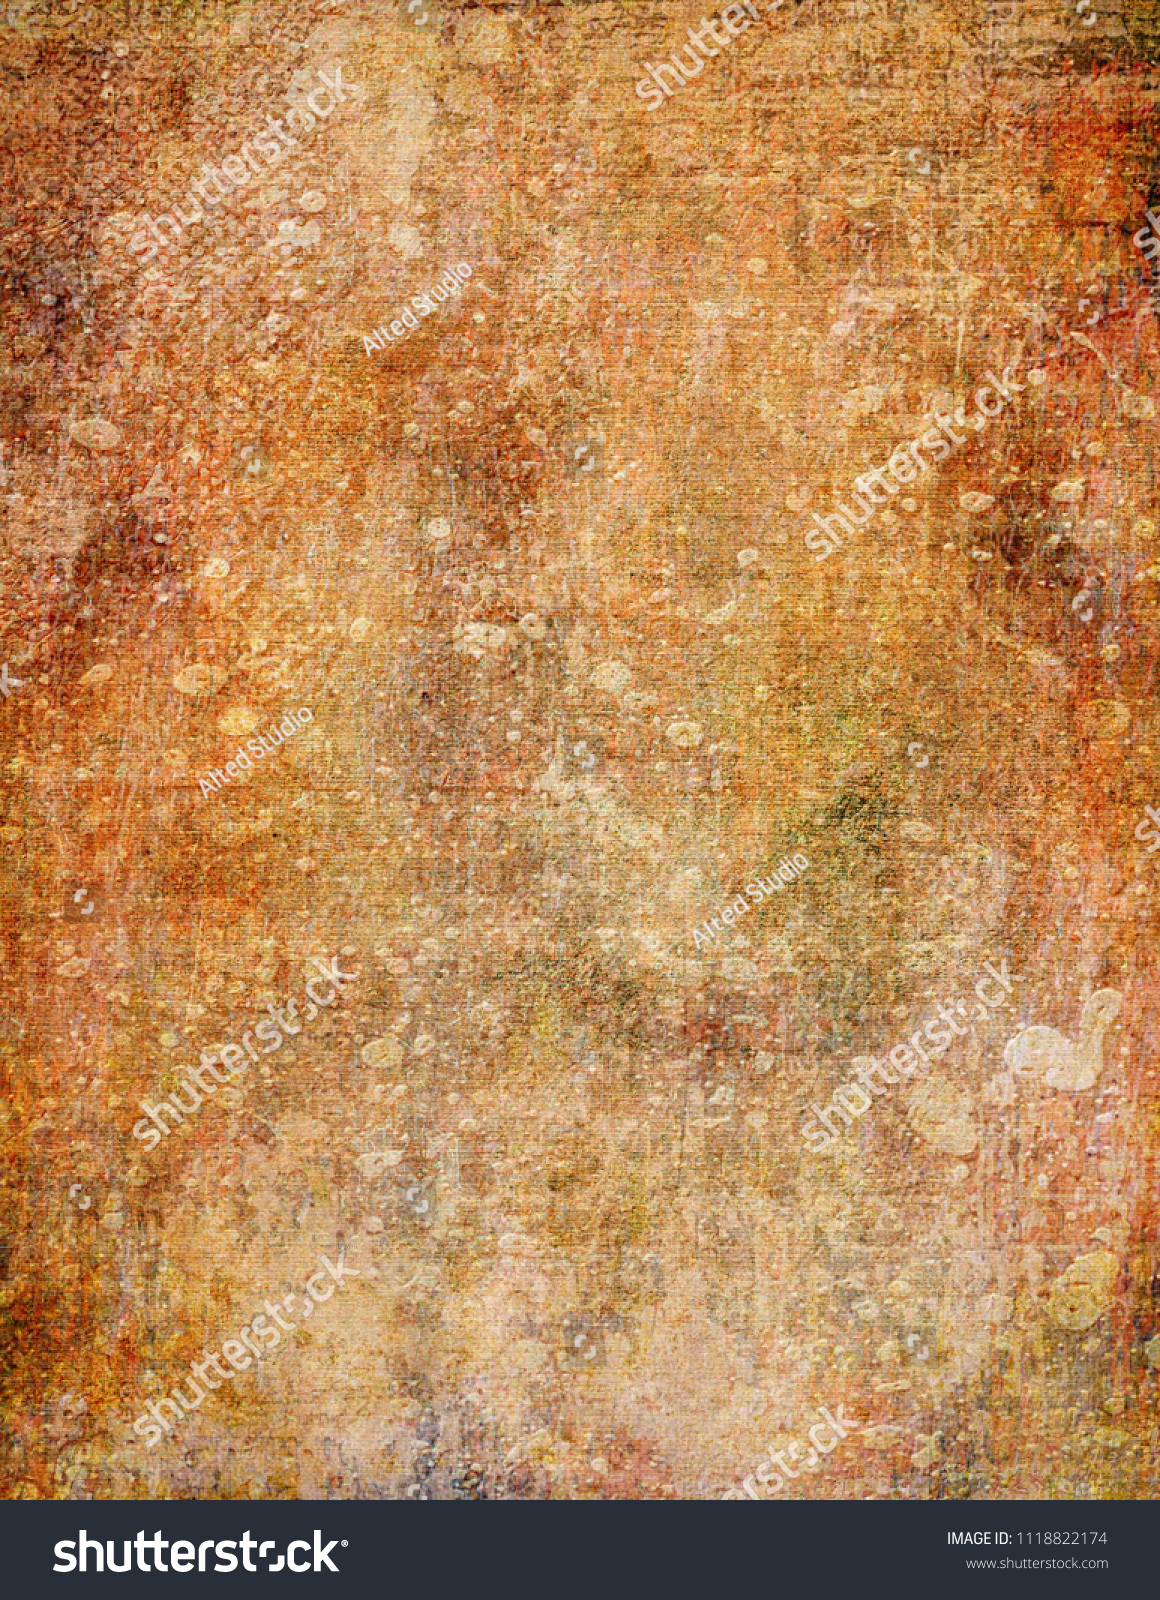 old parchment paper texture stock illustration 1118822174 shutterstock